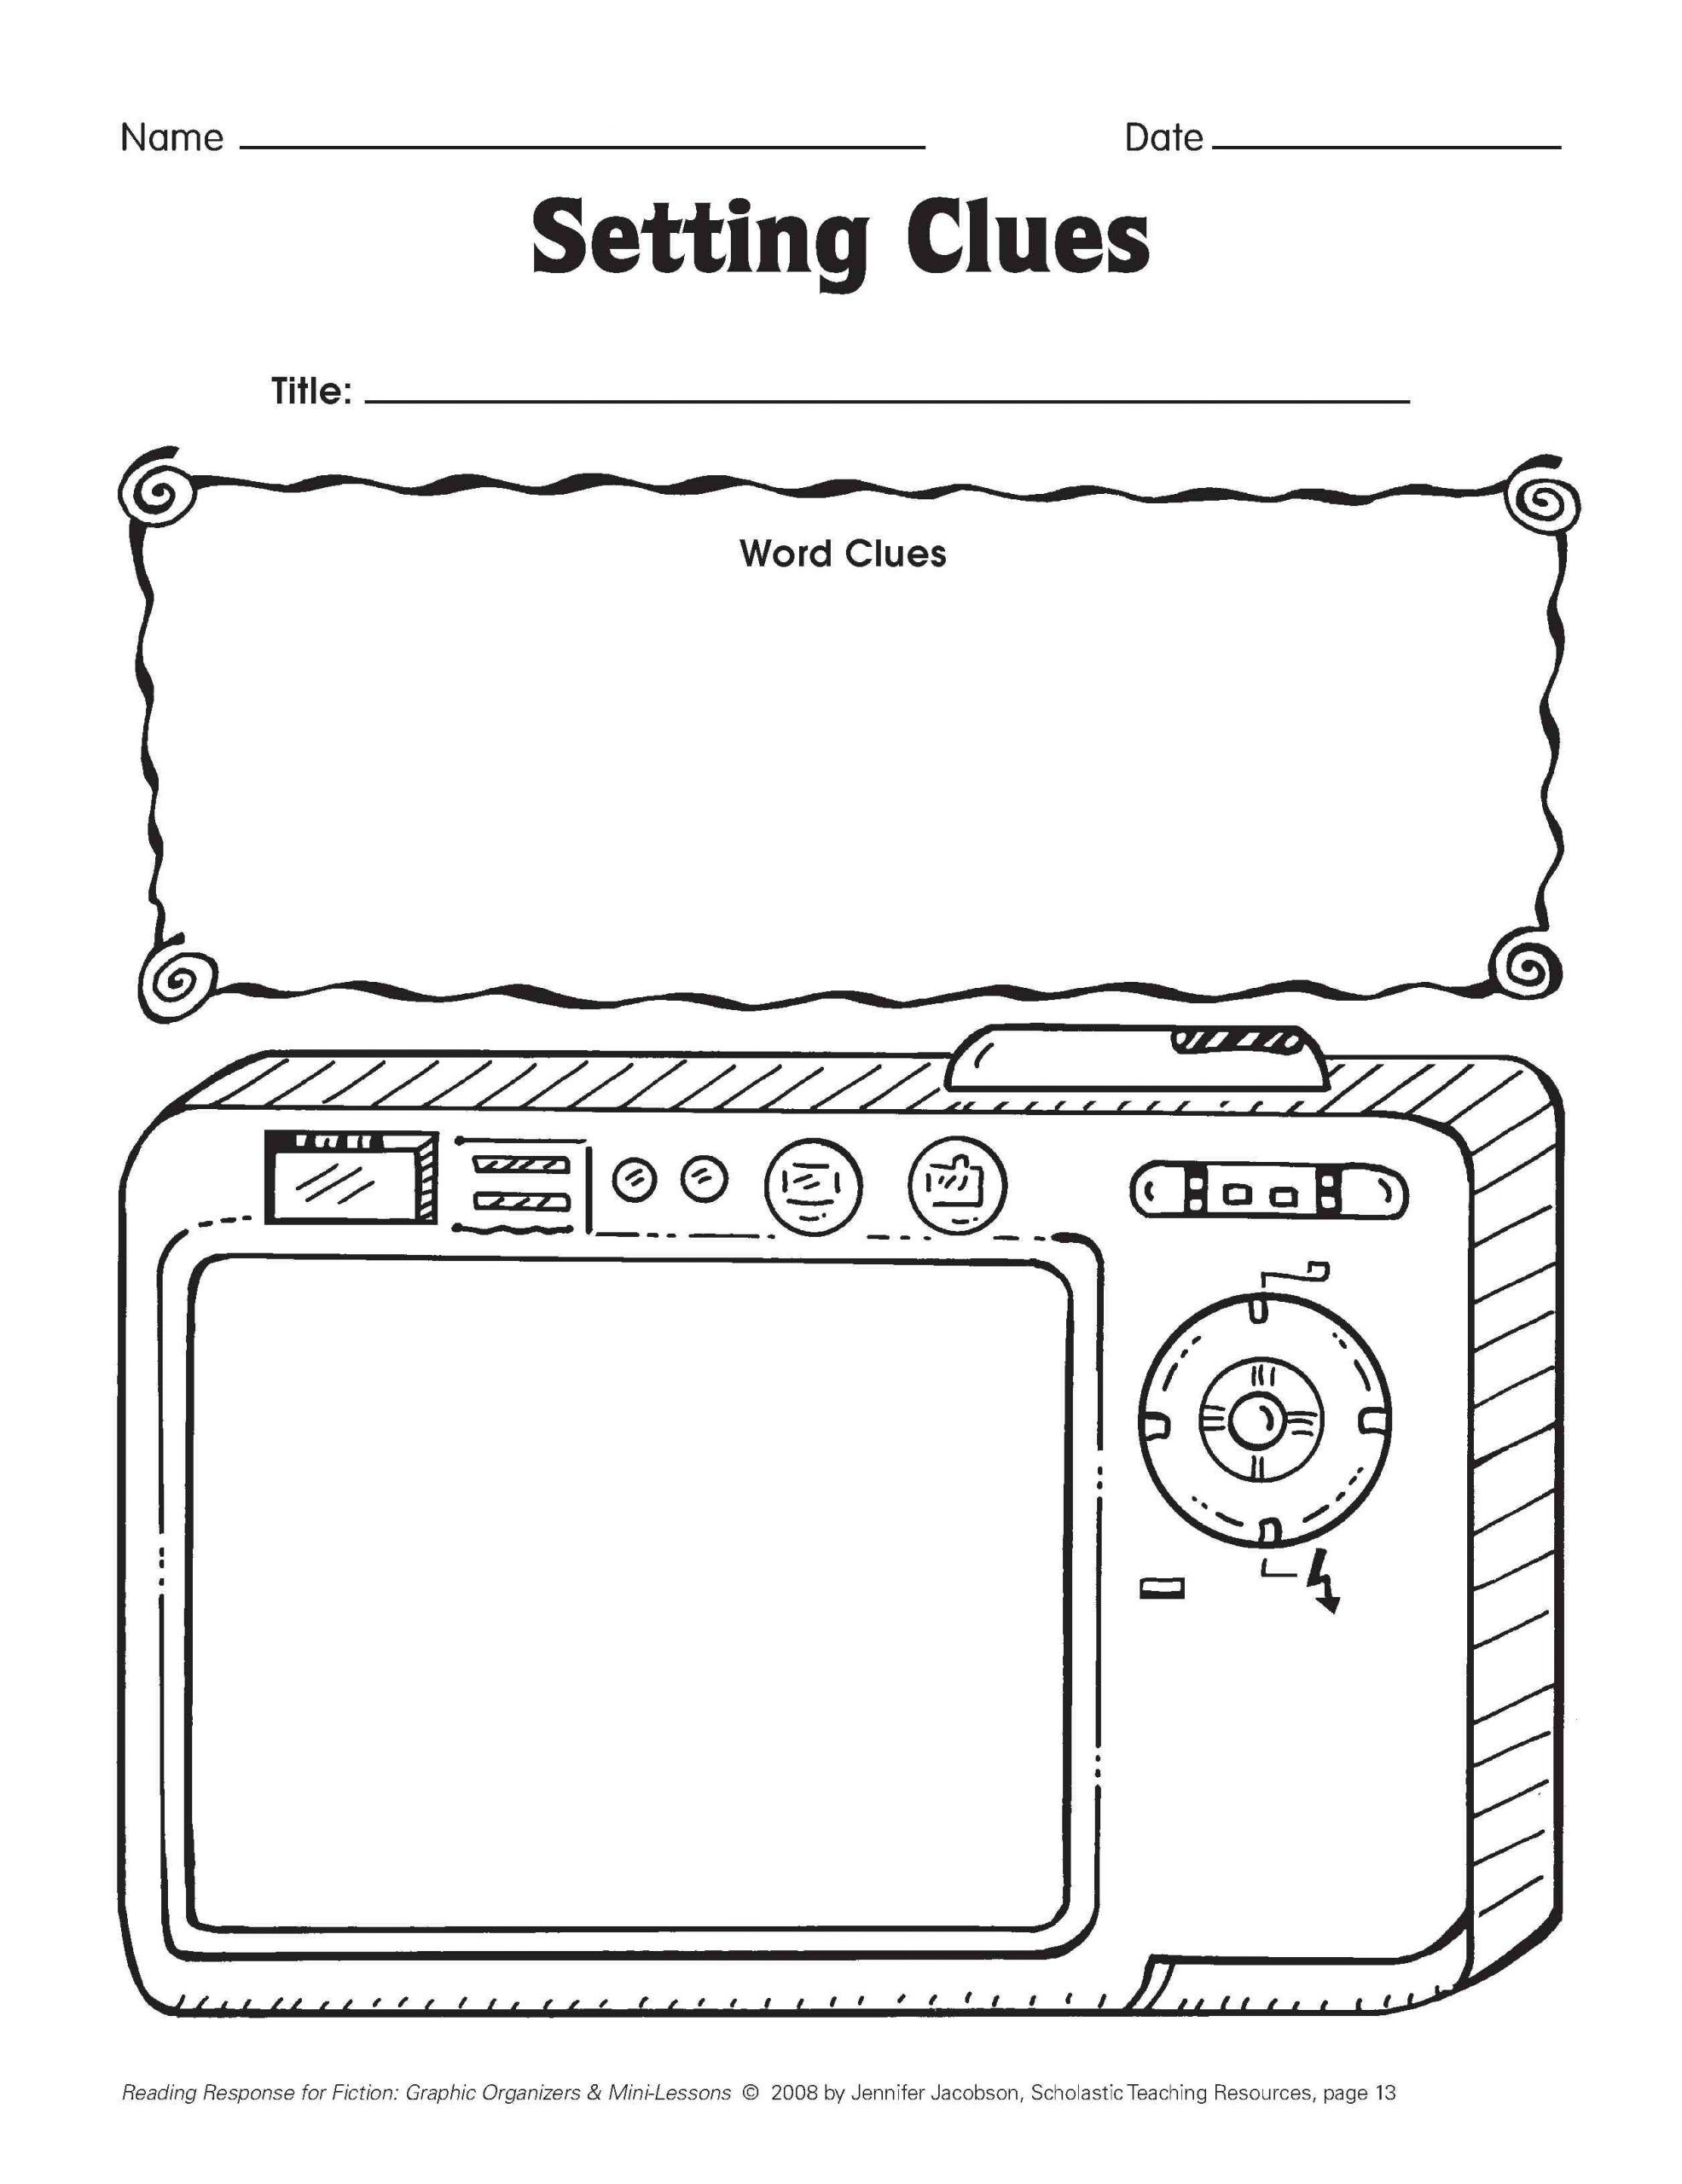 Read and Respond Worksheet Five Minute Reading Responses